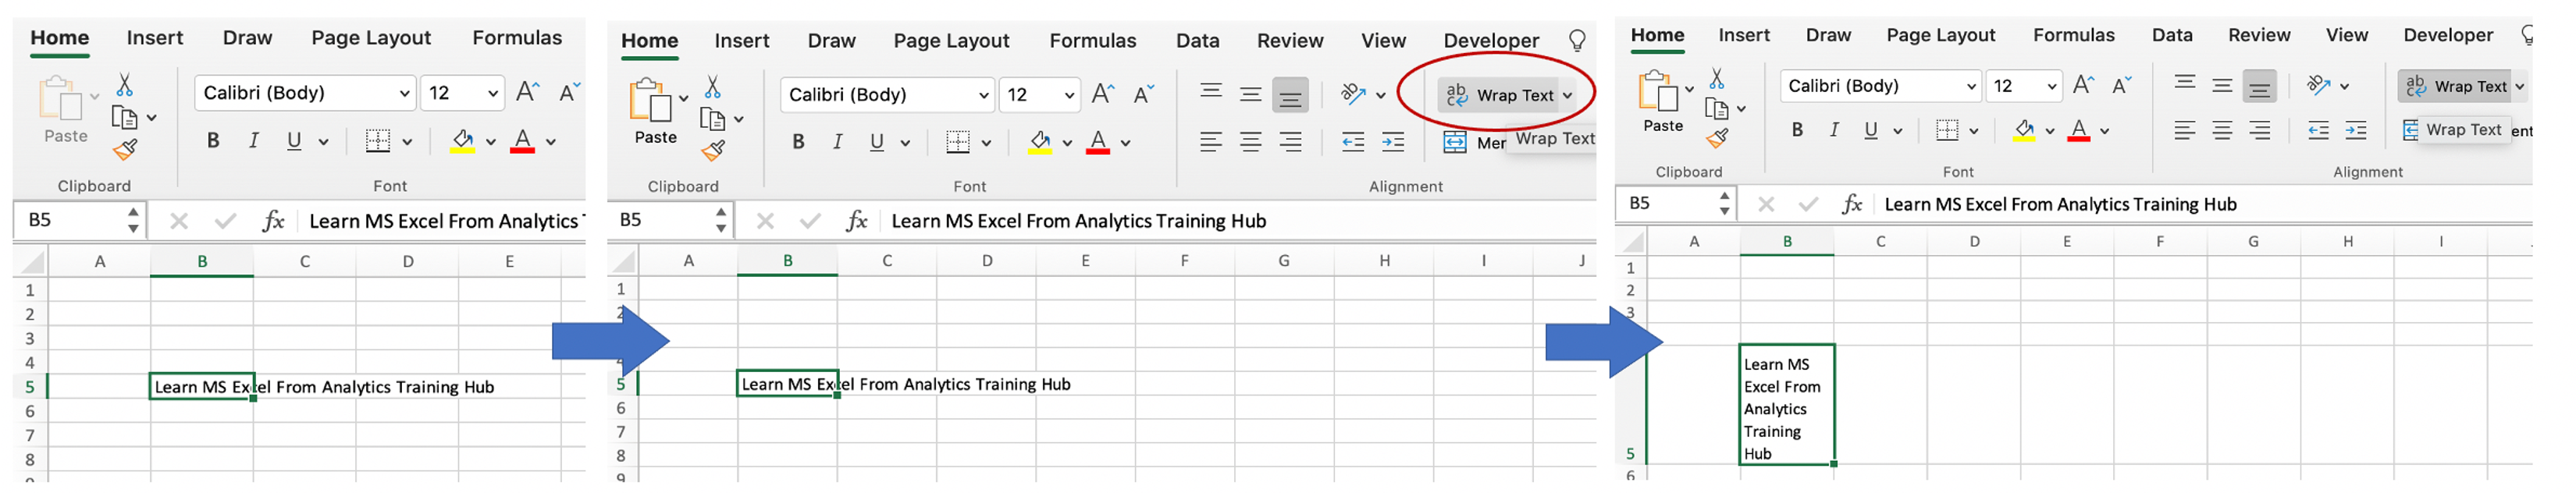 excel interview Questions Wrap text